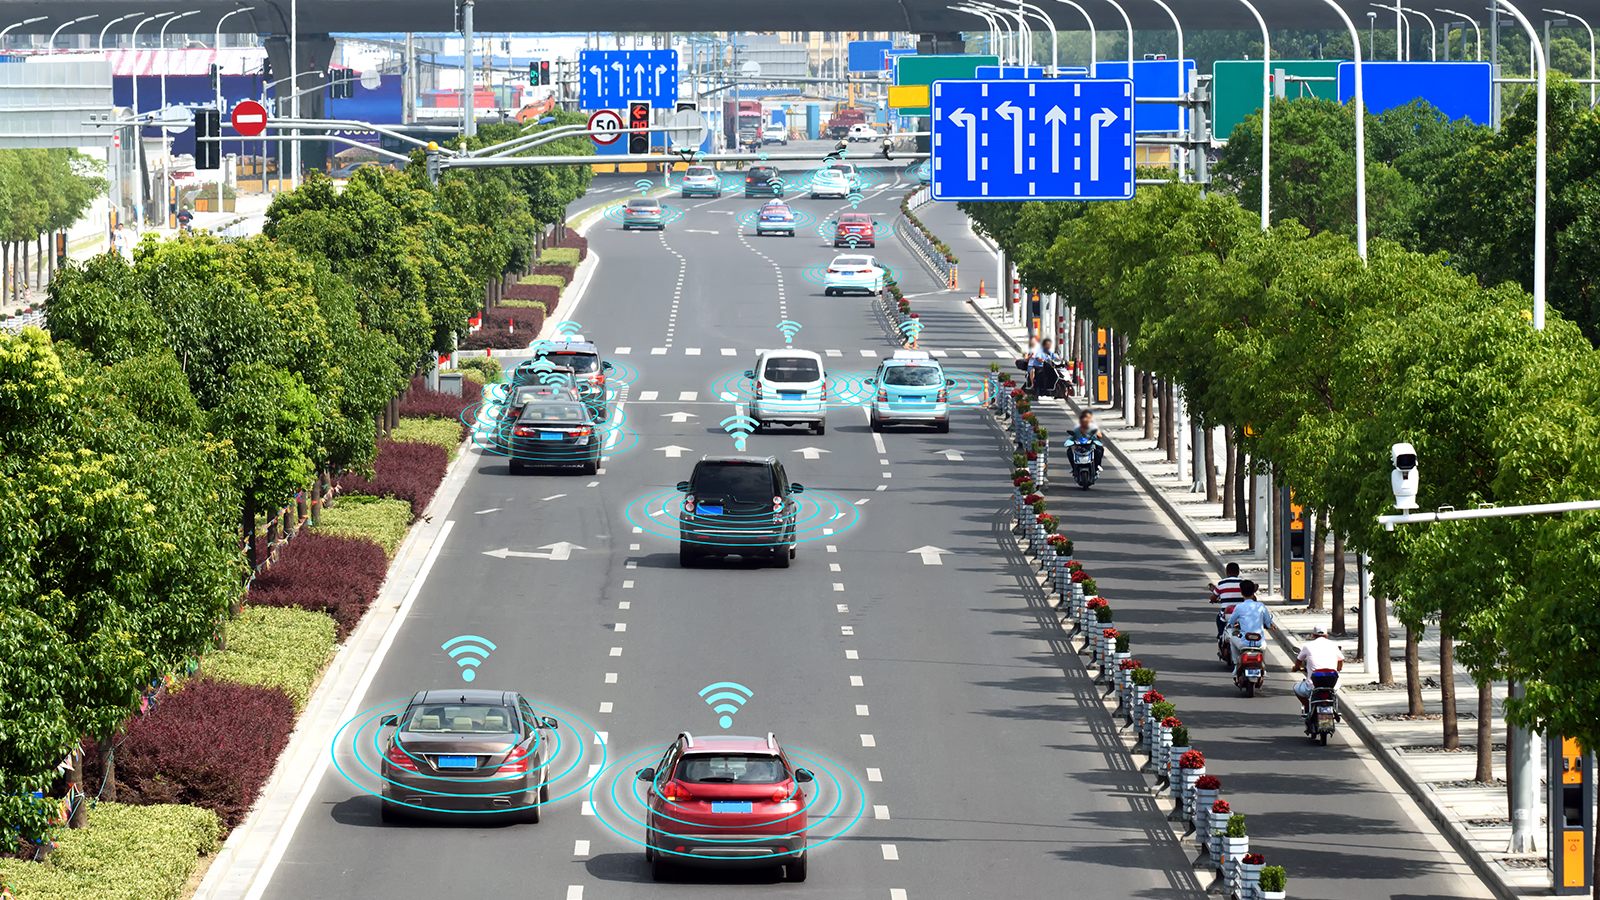 highway with connected and autonomous vehicles